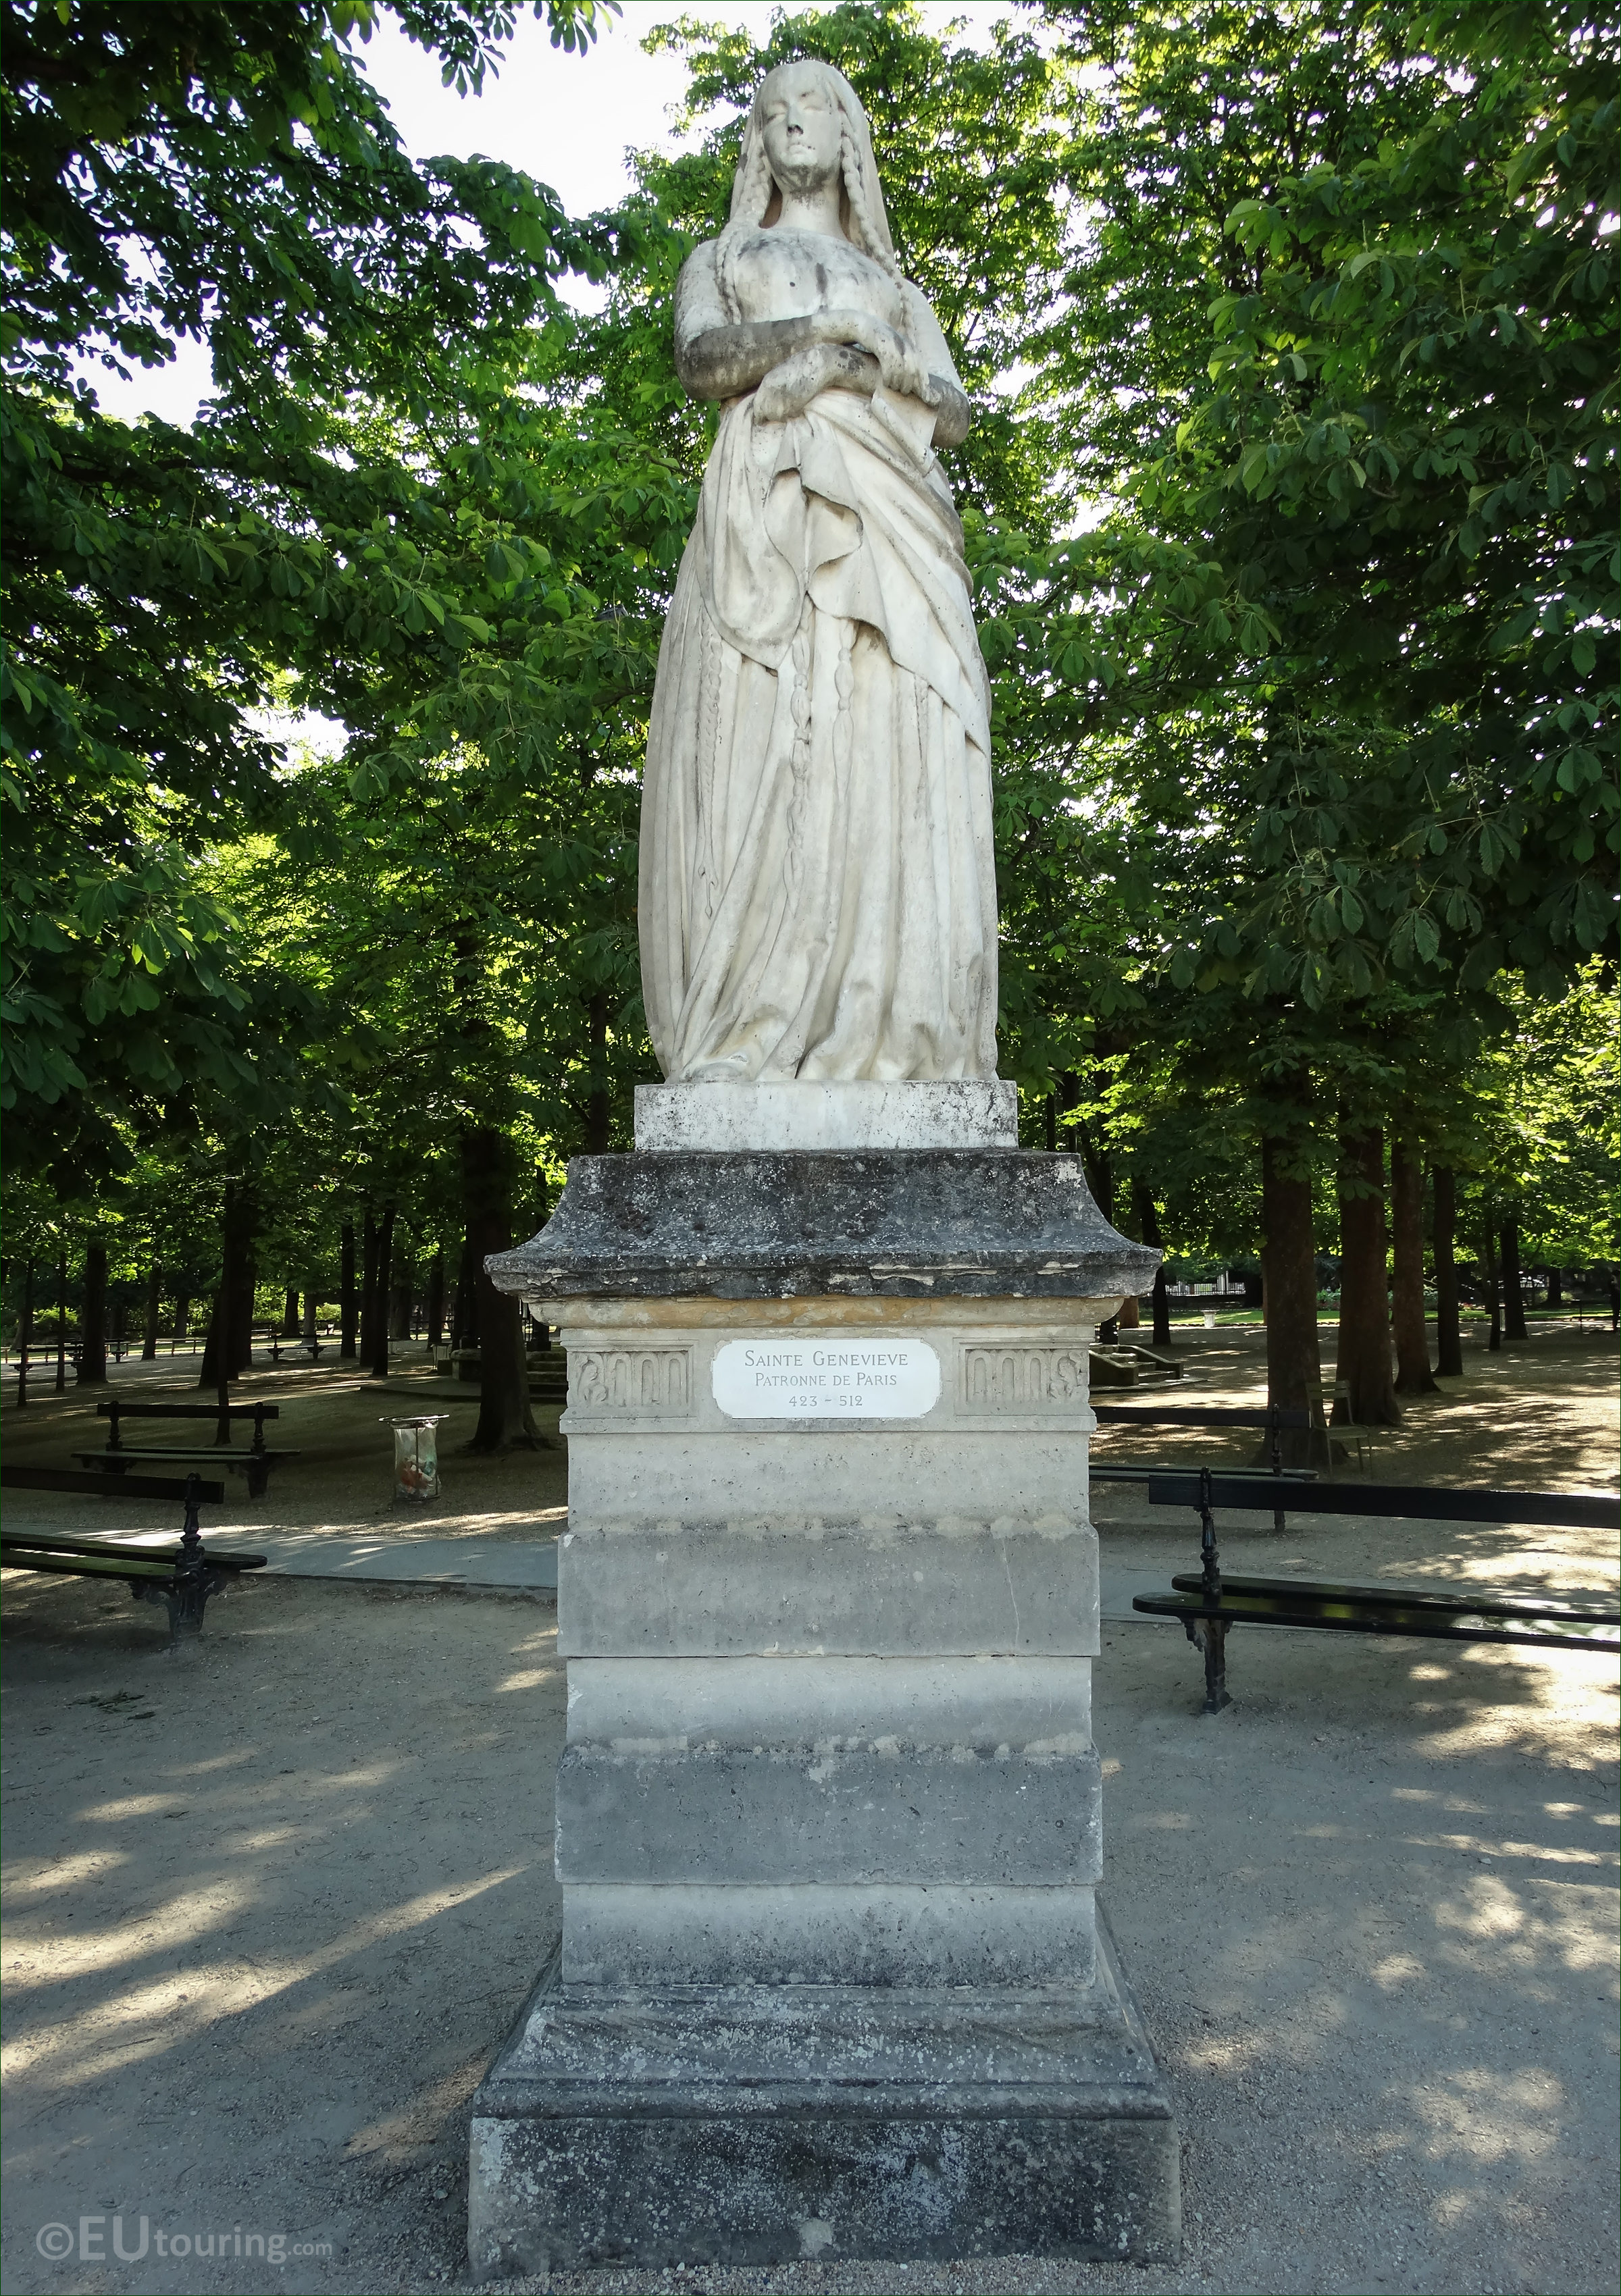 photos of sainte genevieve statue in luxembourg gardens. Black Bedroom Furniture Sets. Home Design Ideas